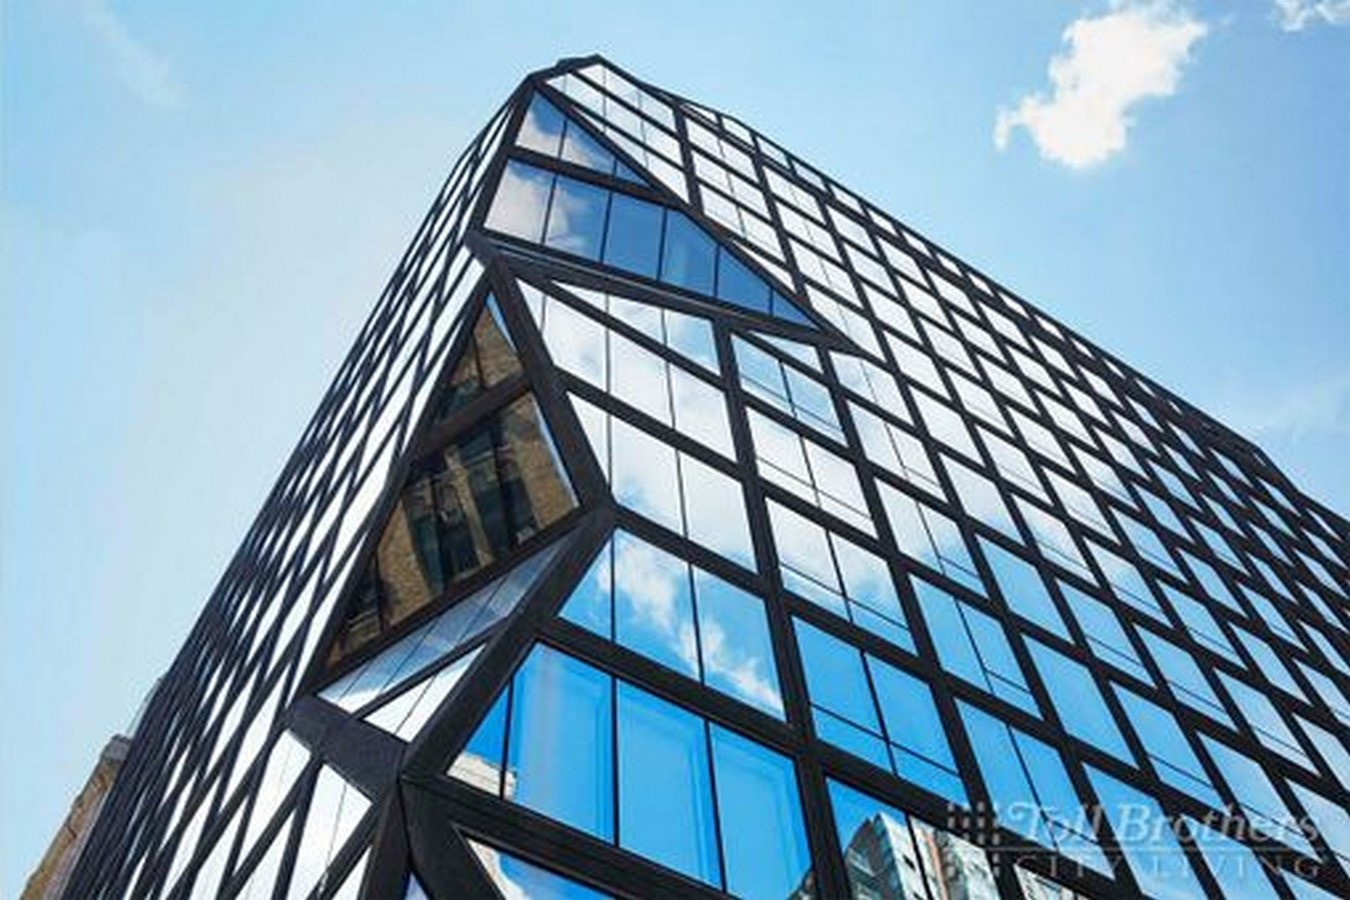 121 East 22nd by Rem Koolhaas: Merging history and modernity - Sheet4